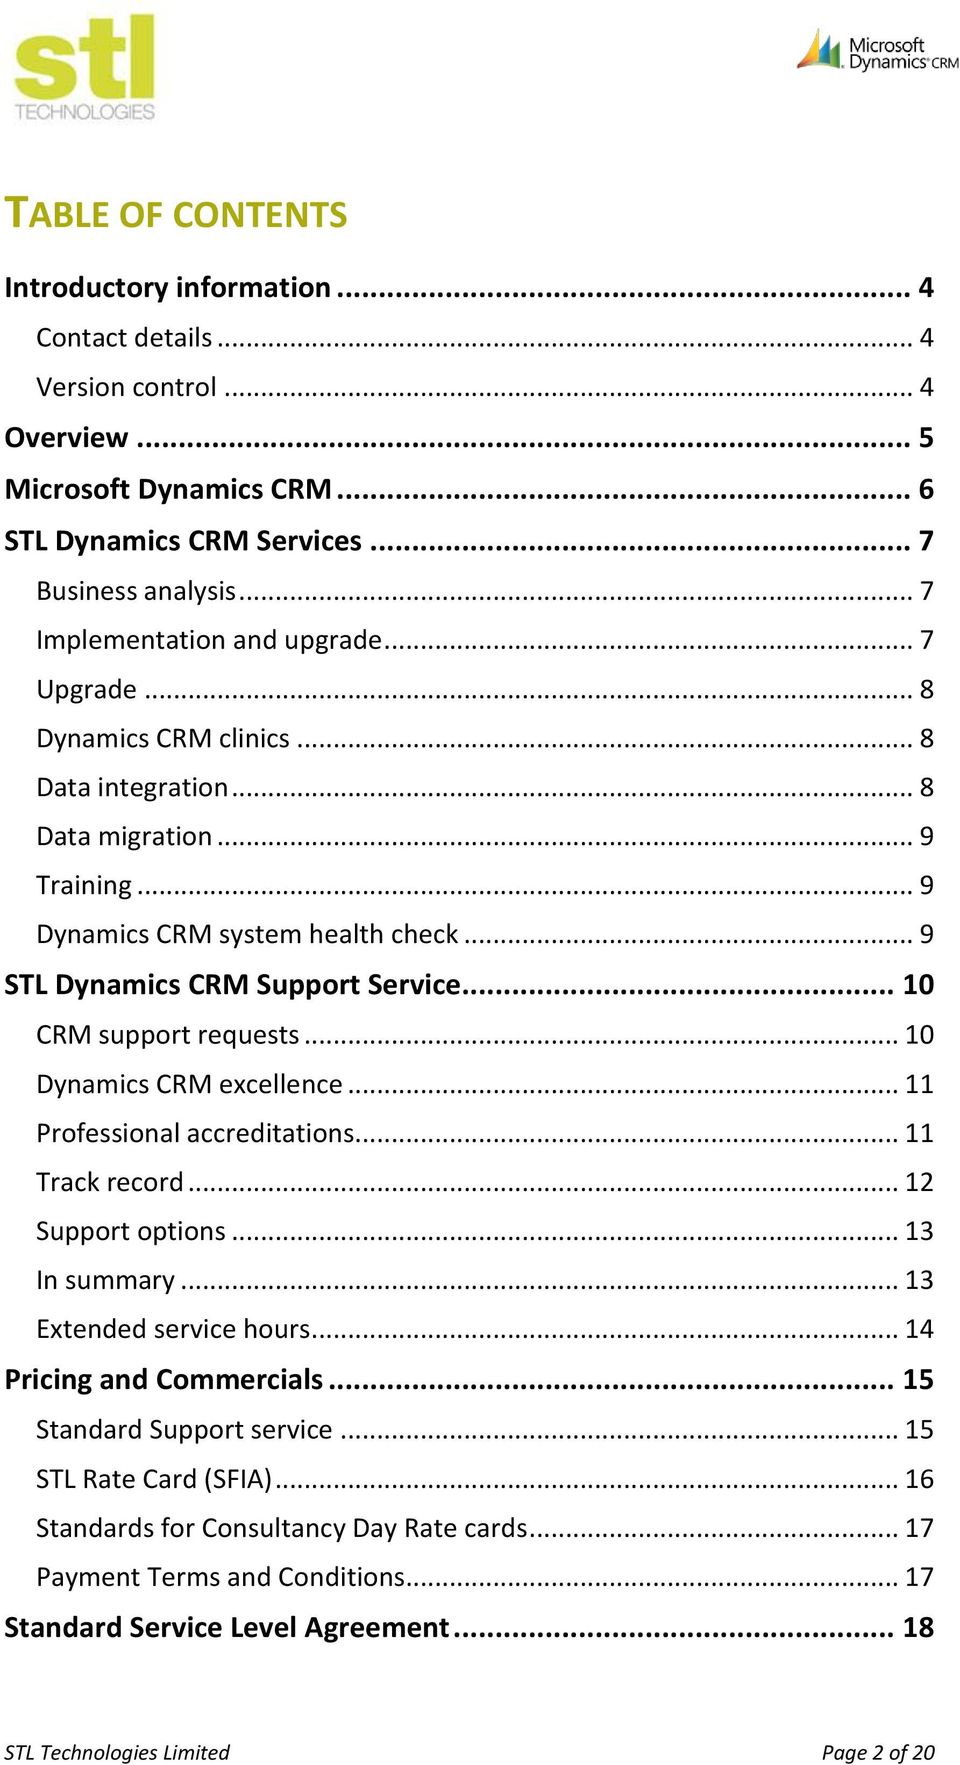 .. 9 STL Dynamics CRM Support Service... 10 CRM support requests... 10 Dynamics CRM excellence... 11 Professional accreditations... 11 Track record... 12 Support options... 13 In summary.